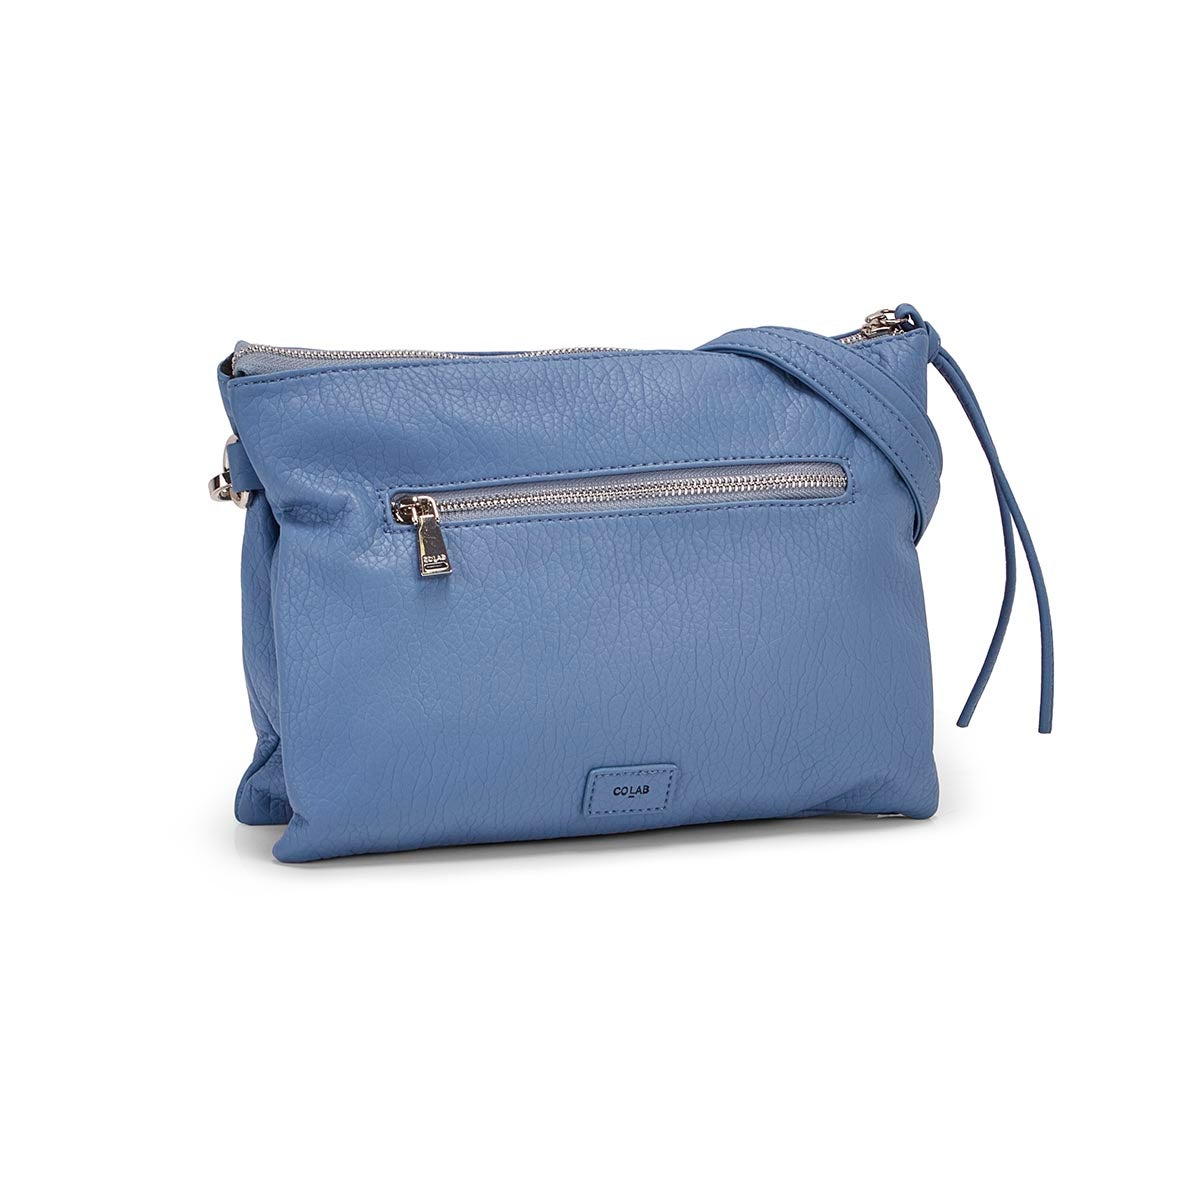 Lds sky clutch crossbody bag